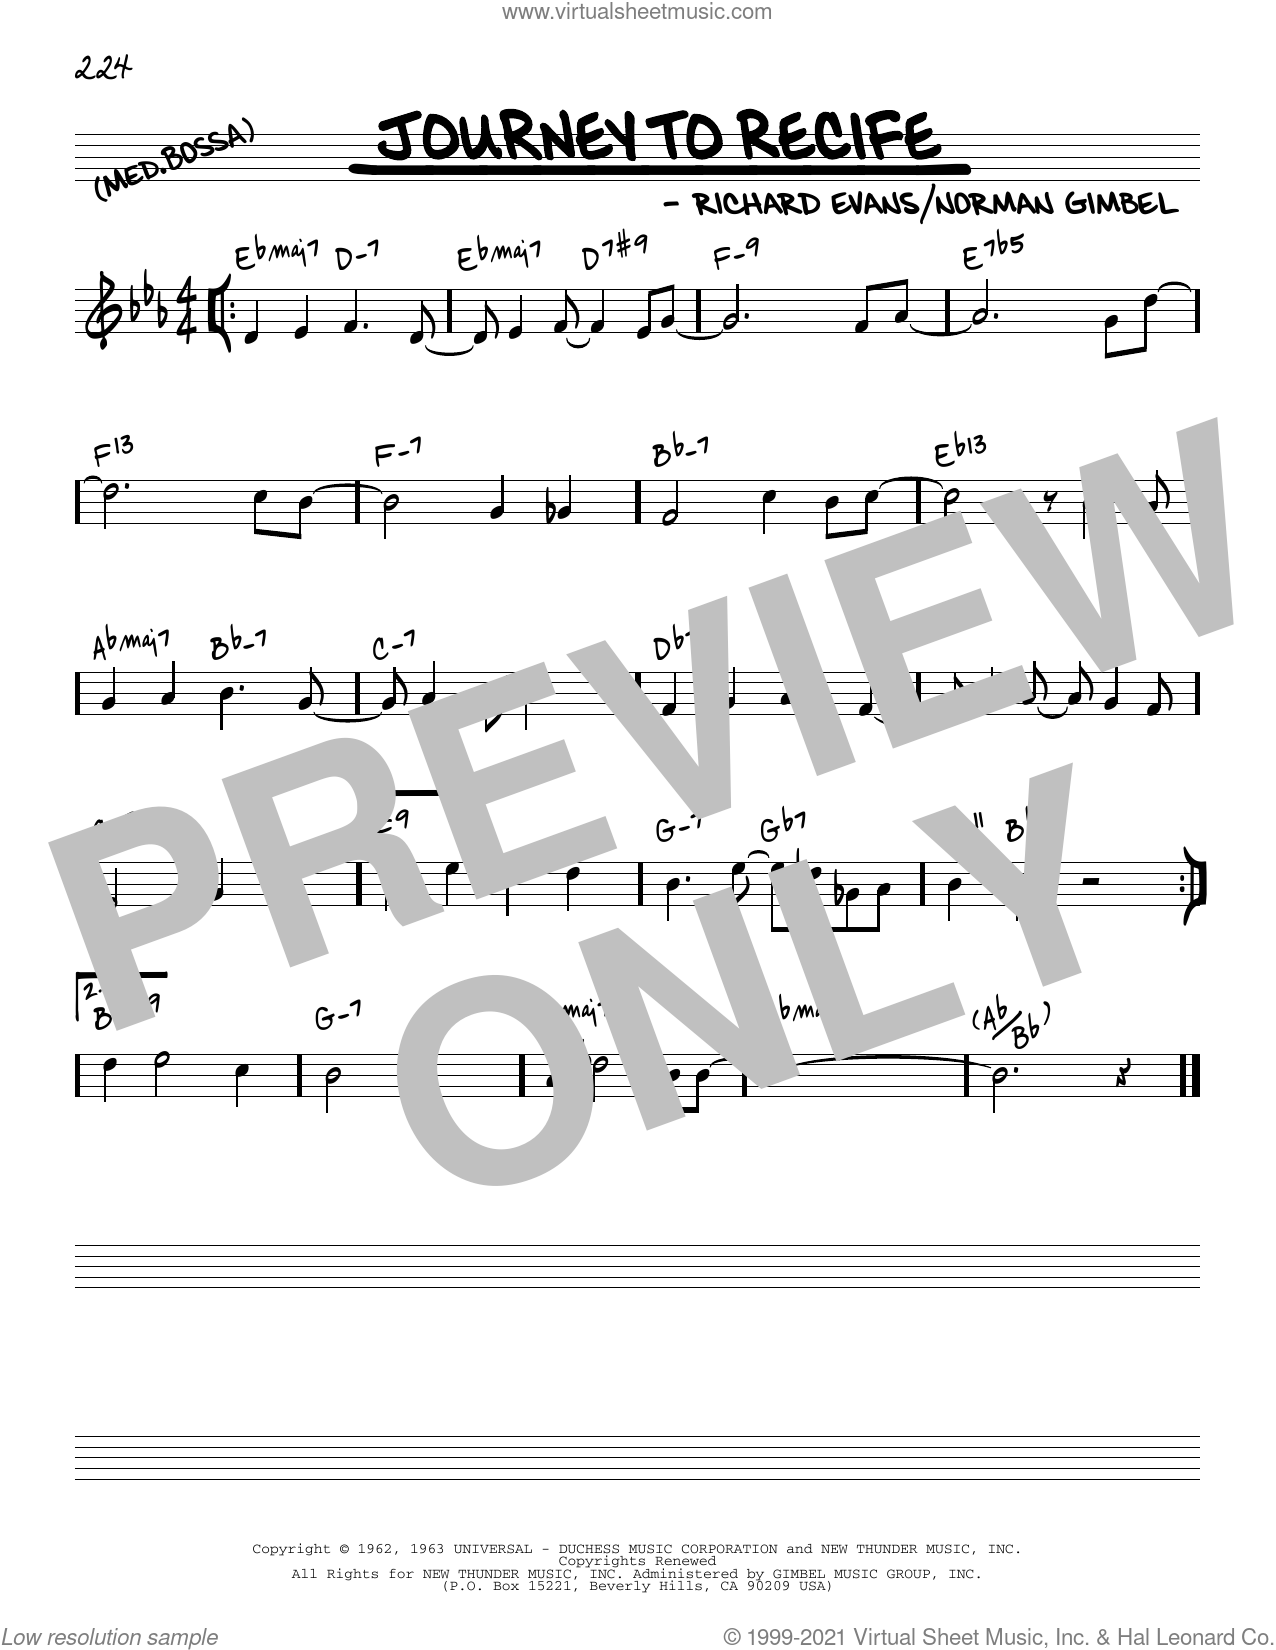 Journey To Recife [Reharmonized version] (arr. Jack Grassel) sheet music for voice and other instruments (real book) by Norman Gimbel, Jack Grassel and Richard Evans, intermediate skill level